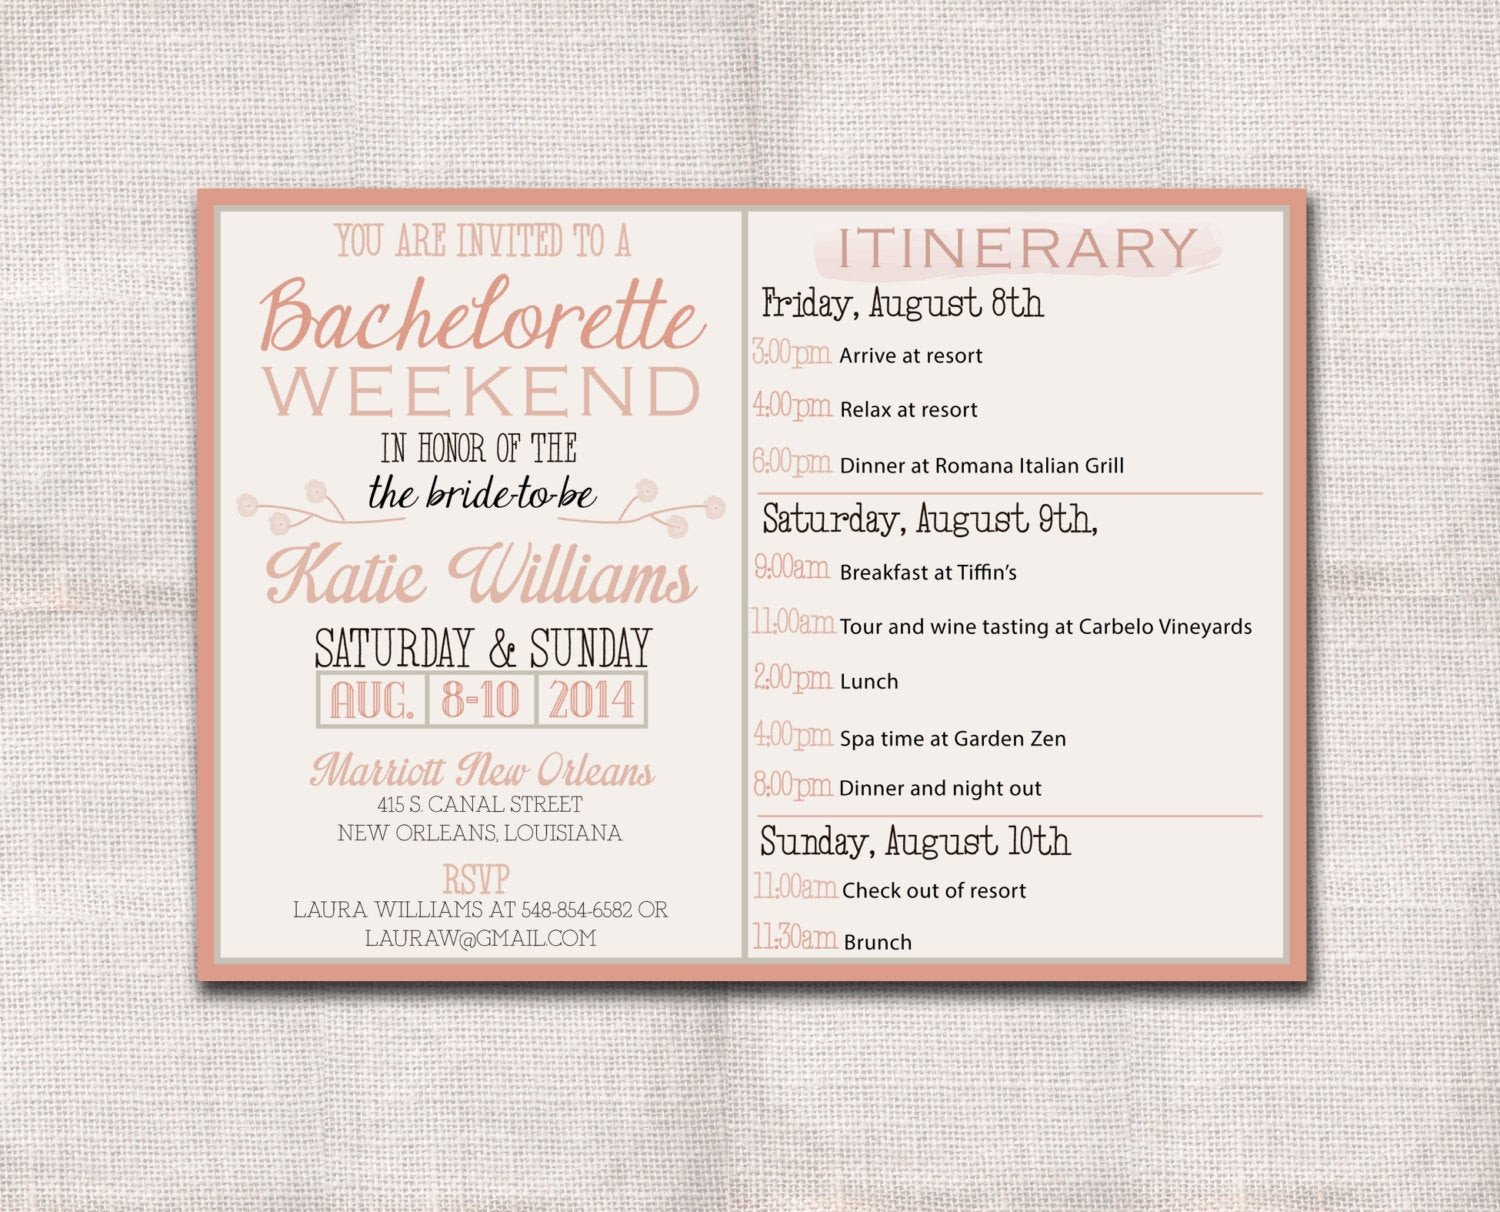 Bachelorette Itinerary Template Free Bachelorette Party Weekend Invitation and Itinerary Custom